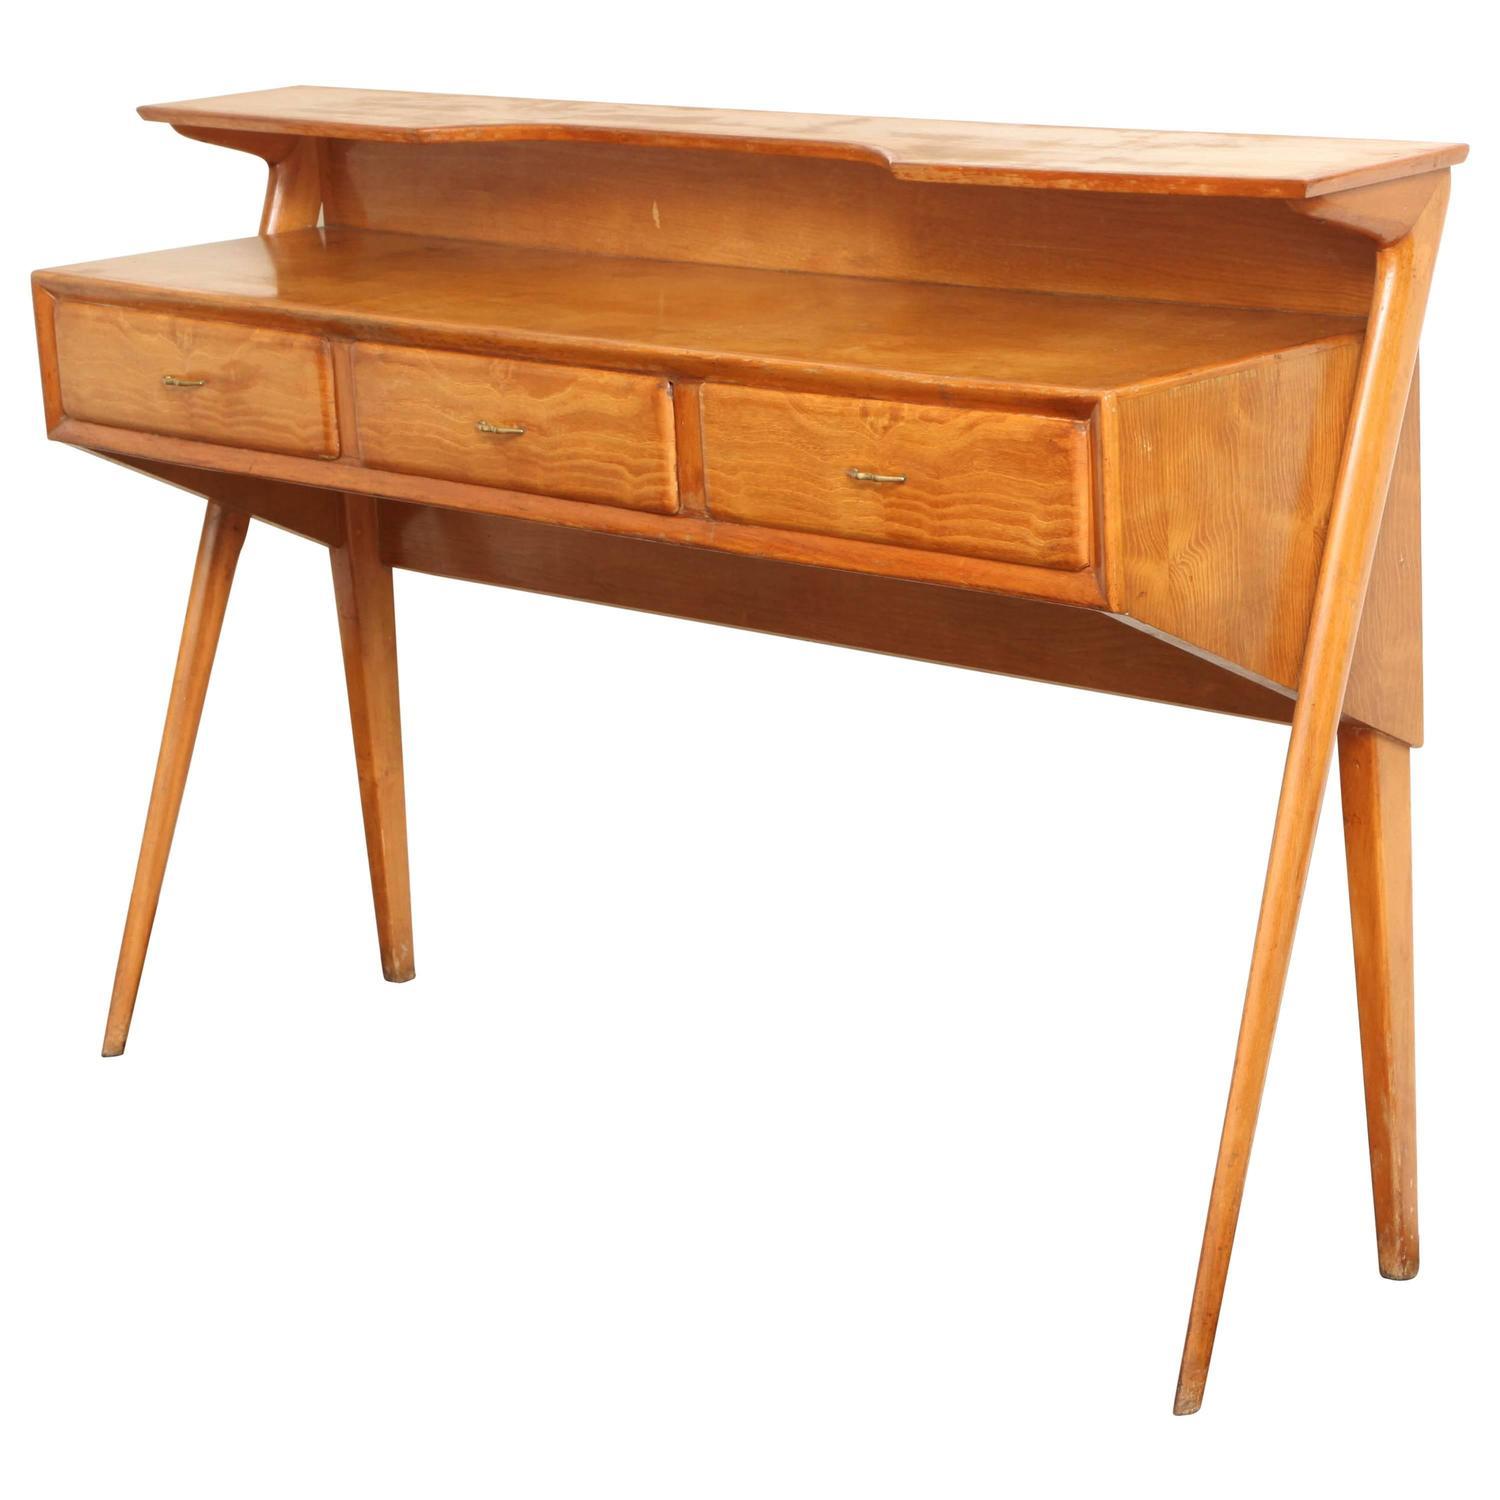 Italian mid century modern cherrywood console table at 1stdibs - Modern table ...